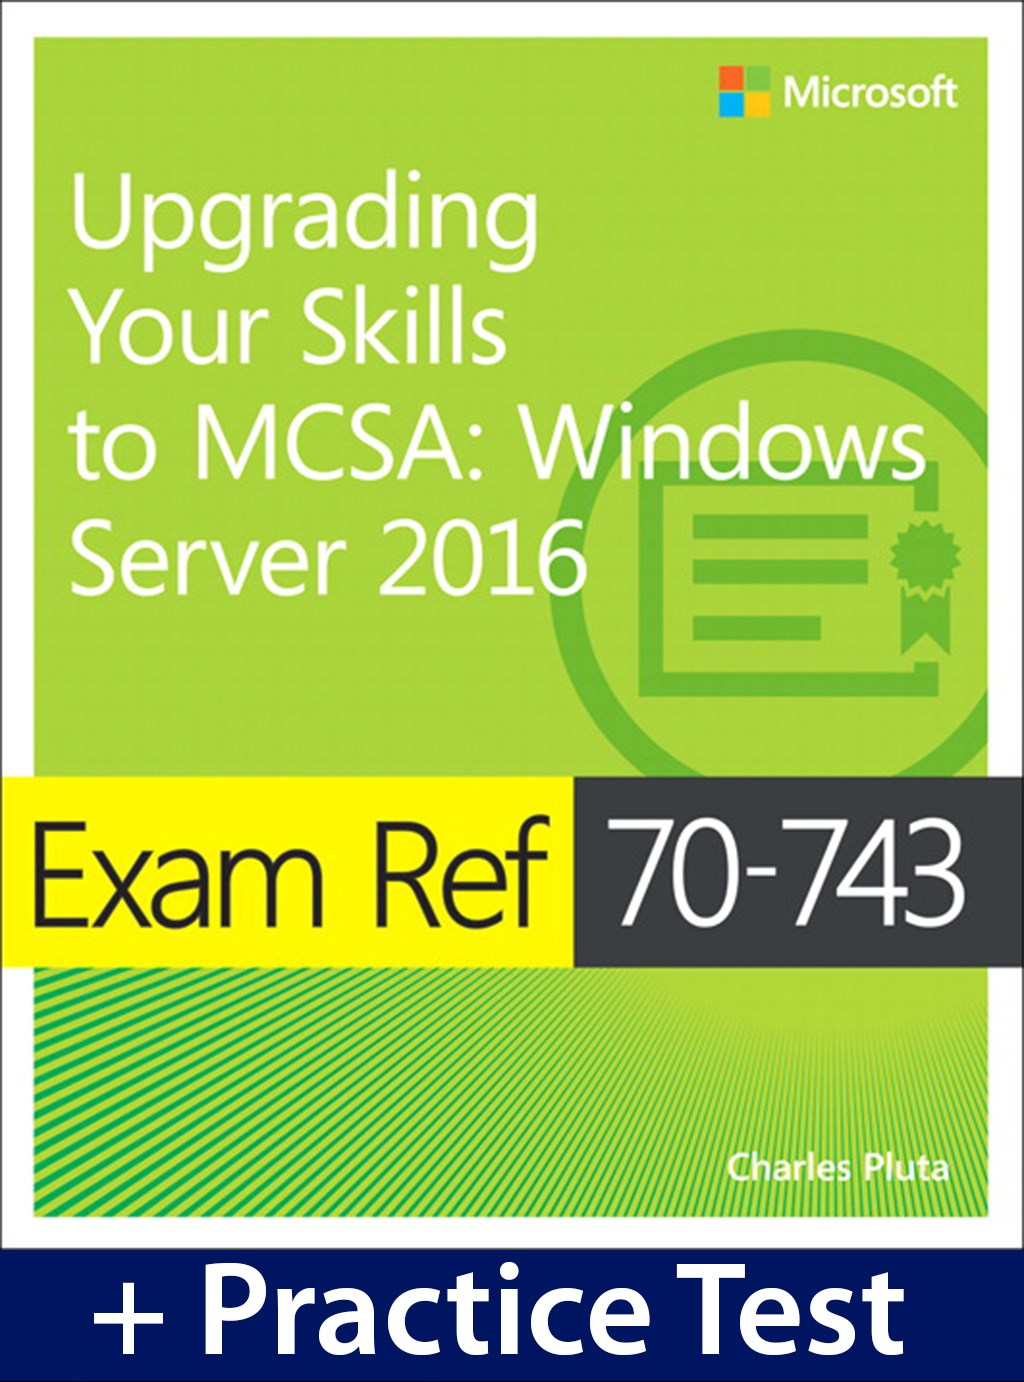 Exam Ref 70-743 Upgrading Your Skills to MCSA: Windows Server 2016 with Practice Test